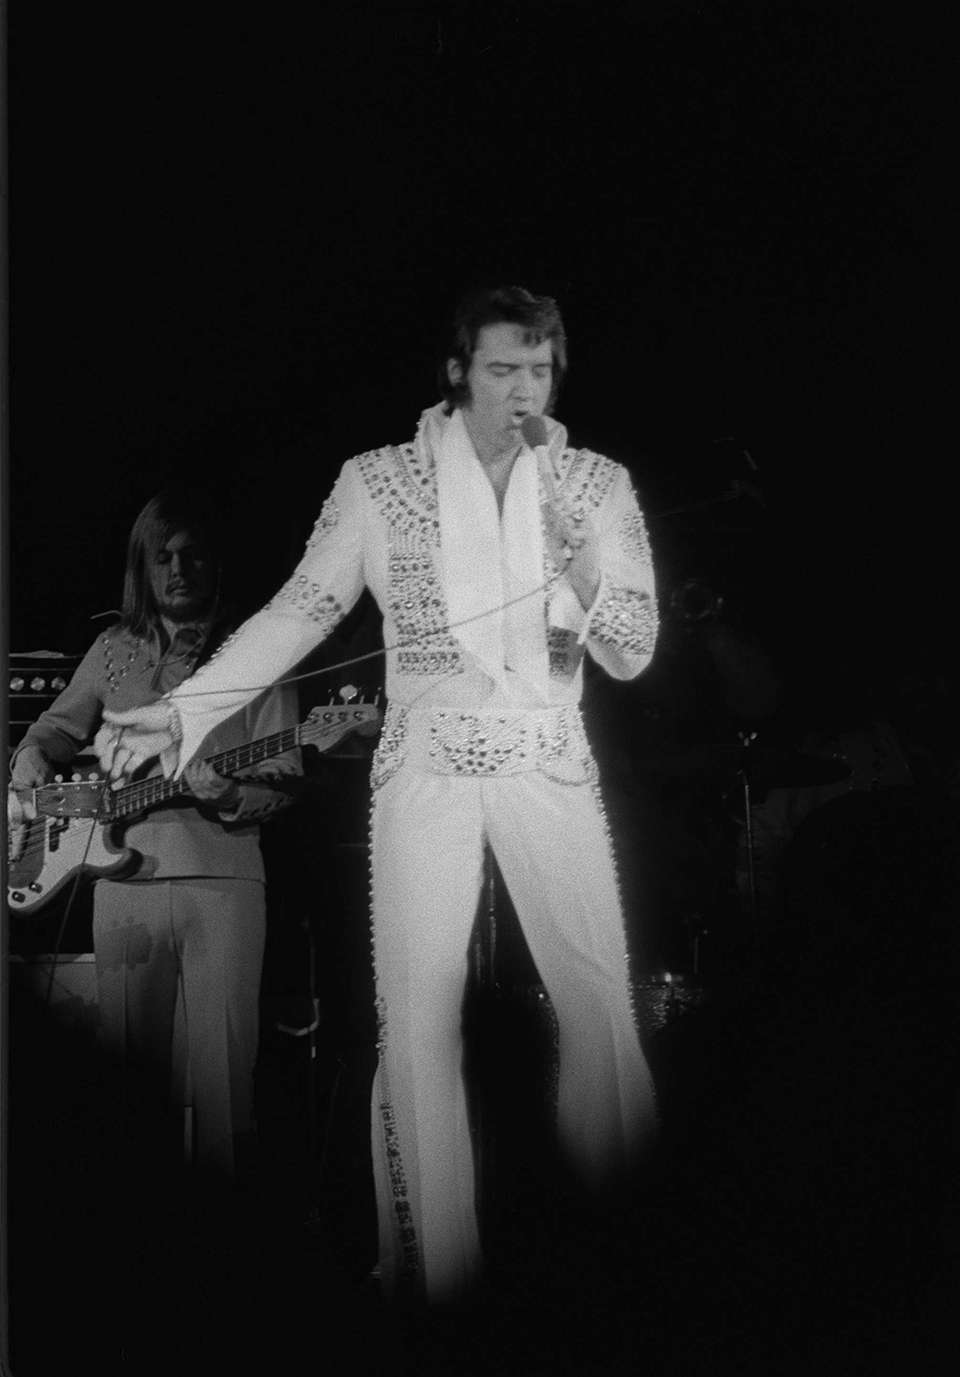 Elvis Presley performs at Nassau Coliseum on June